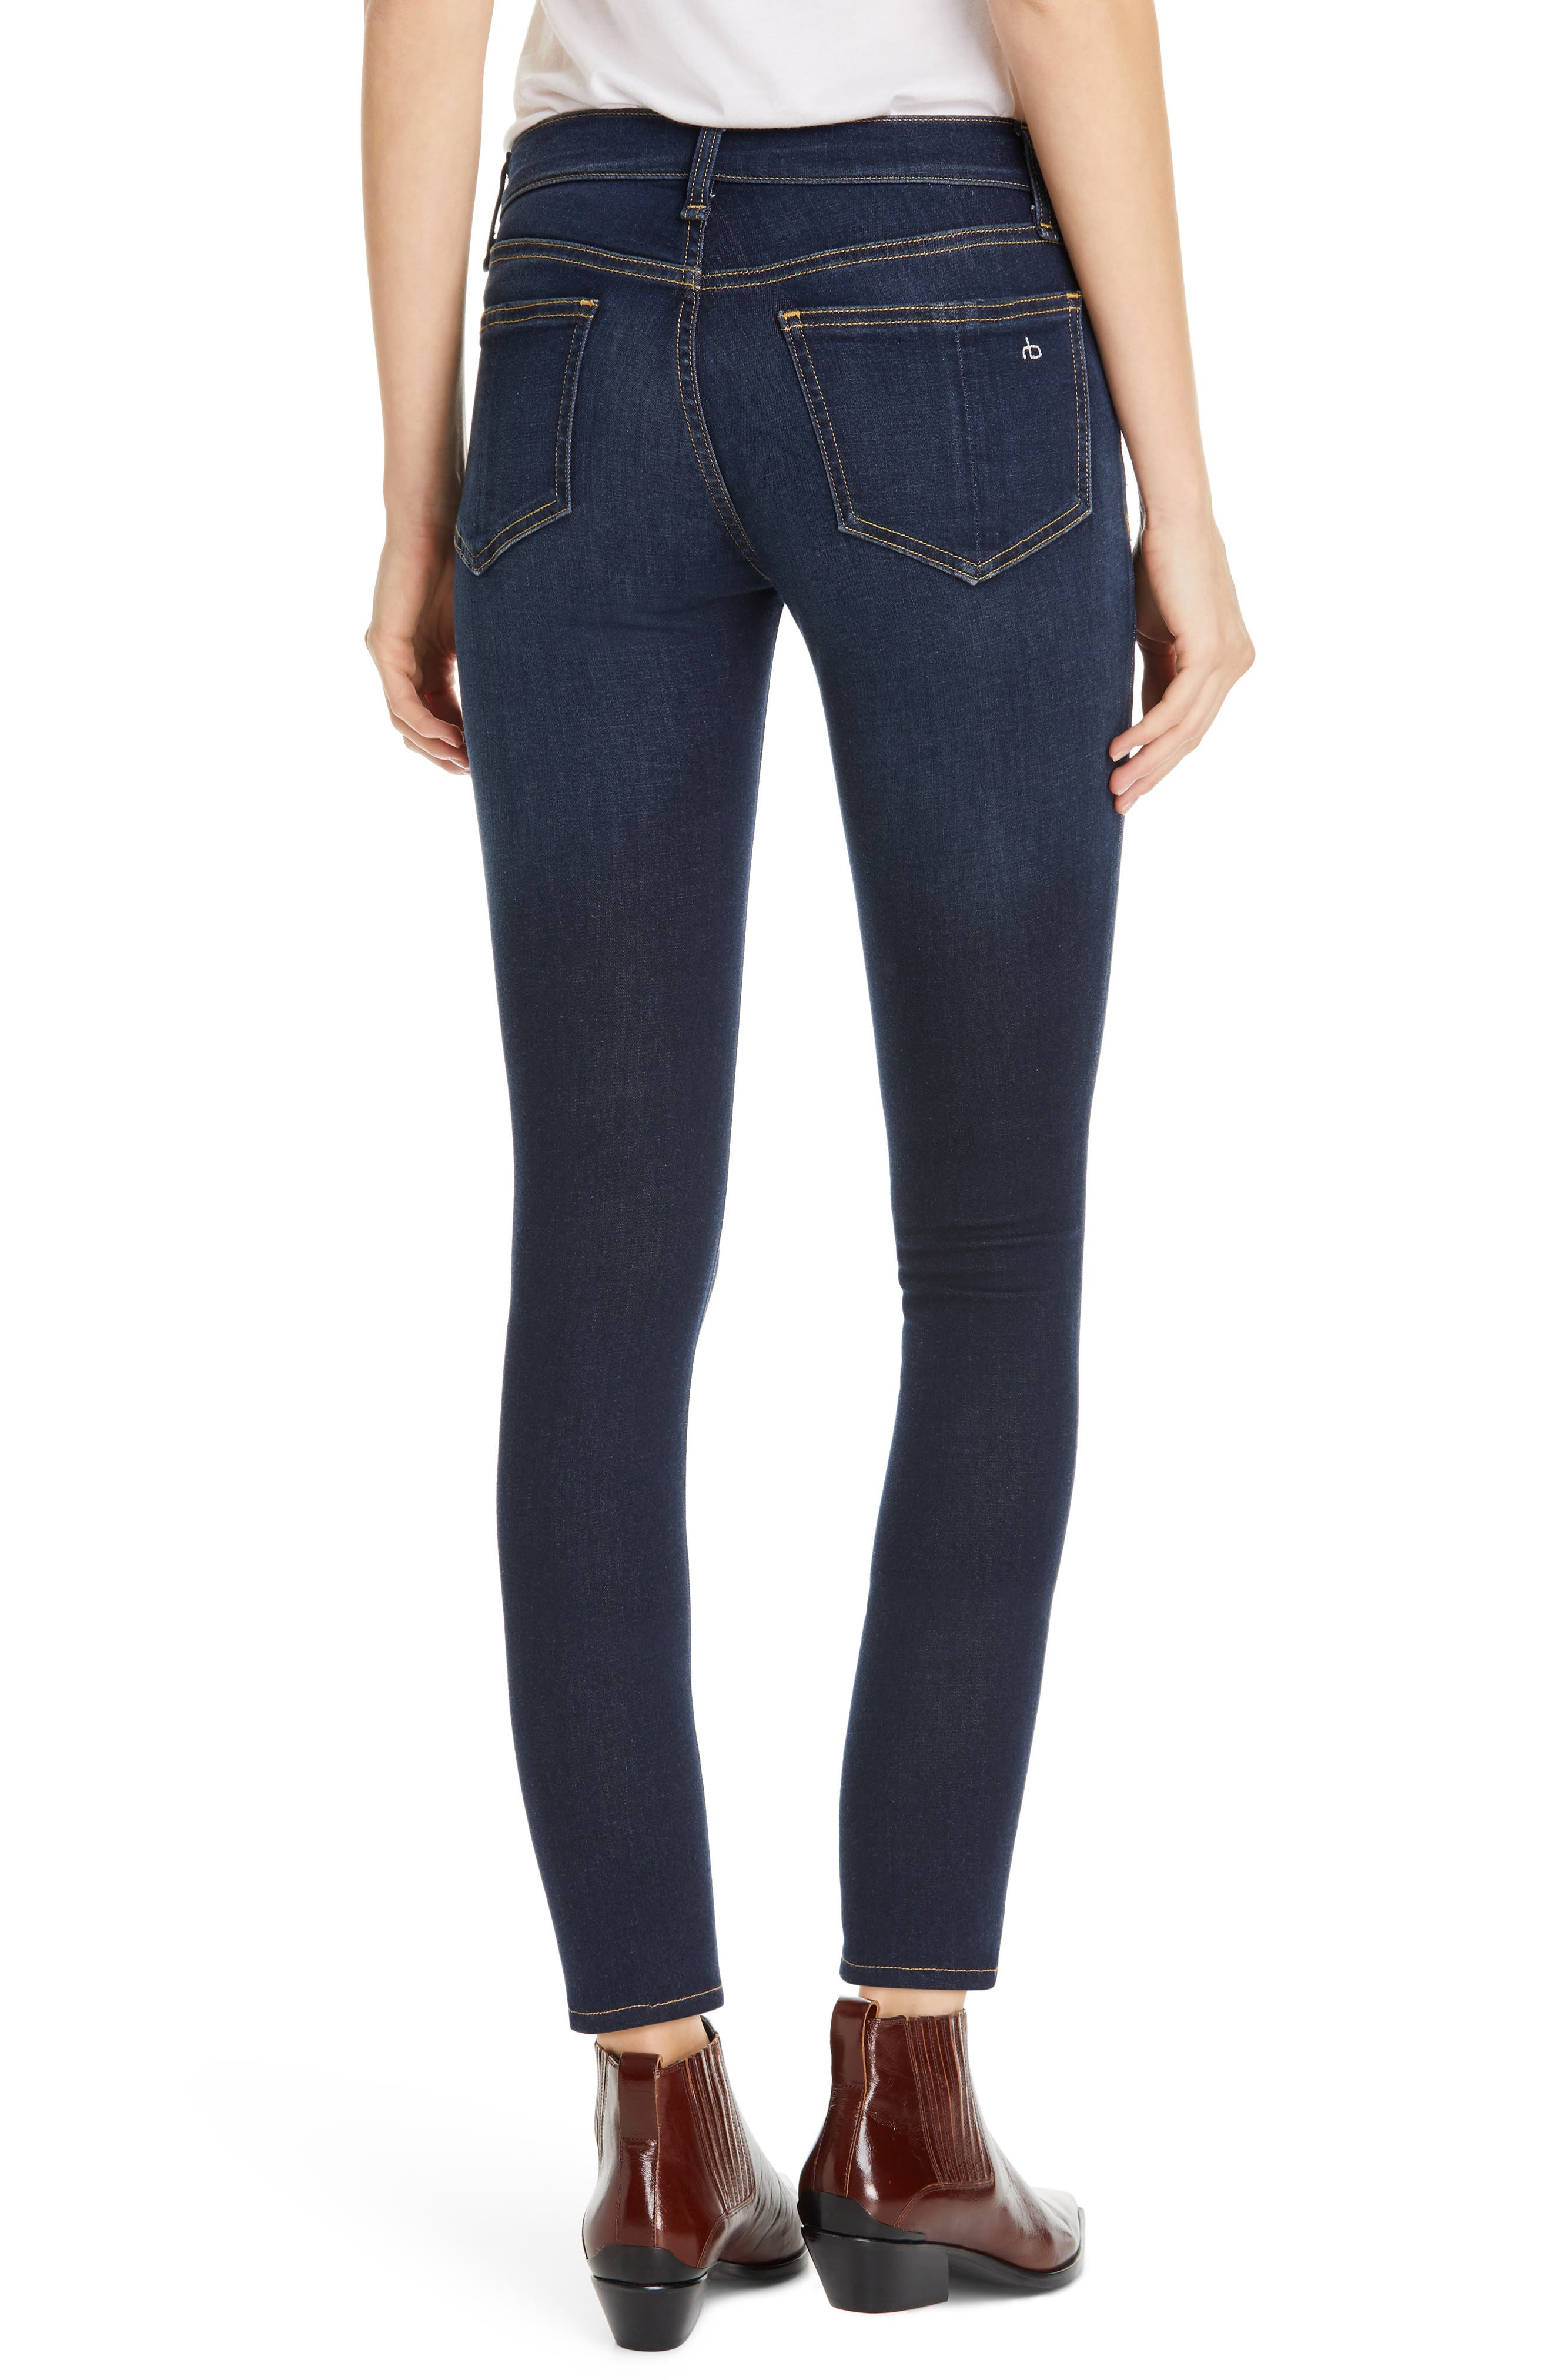 RAG & BONE, Cate Ankle Skinny Jeans, Alternate thumbnail 2, color, CARMEN